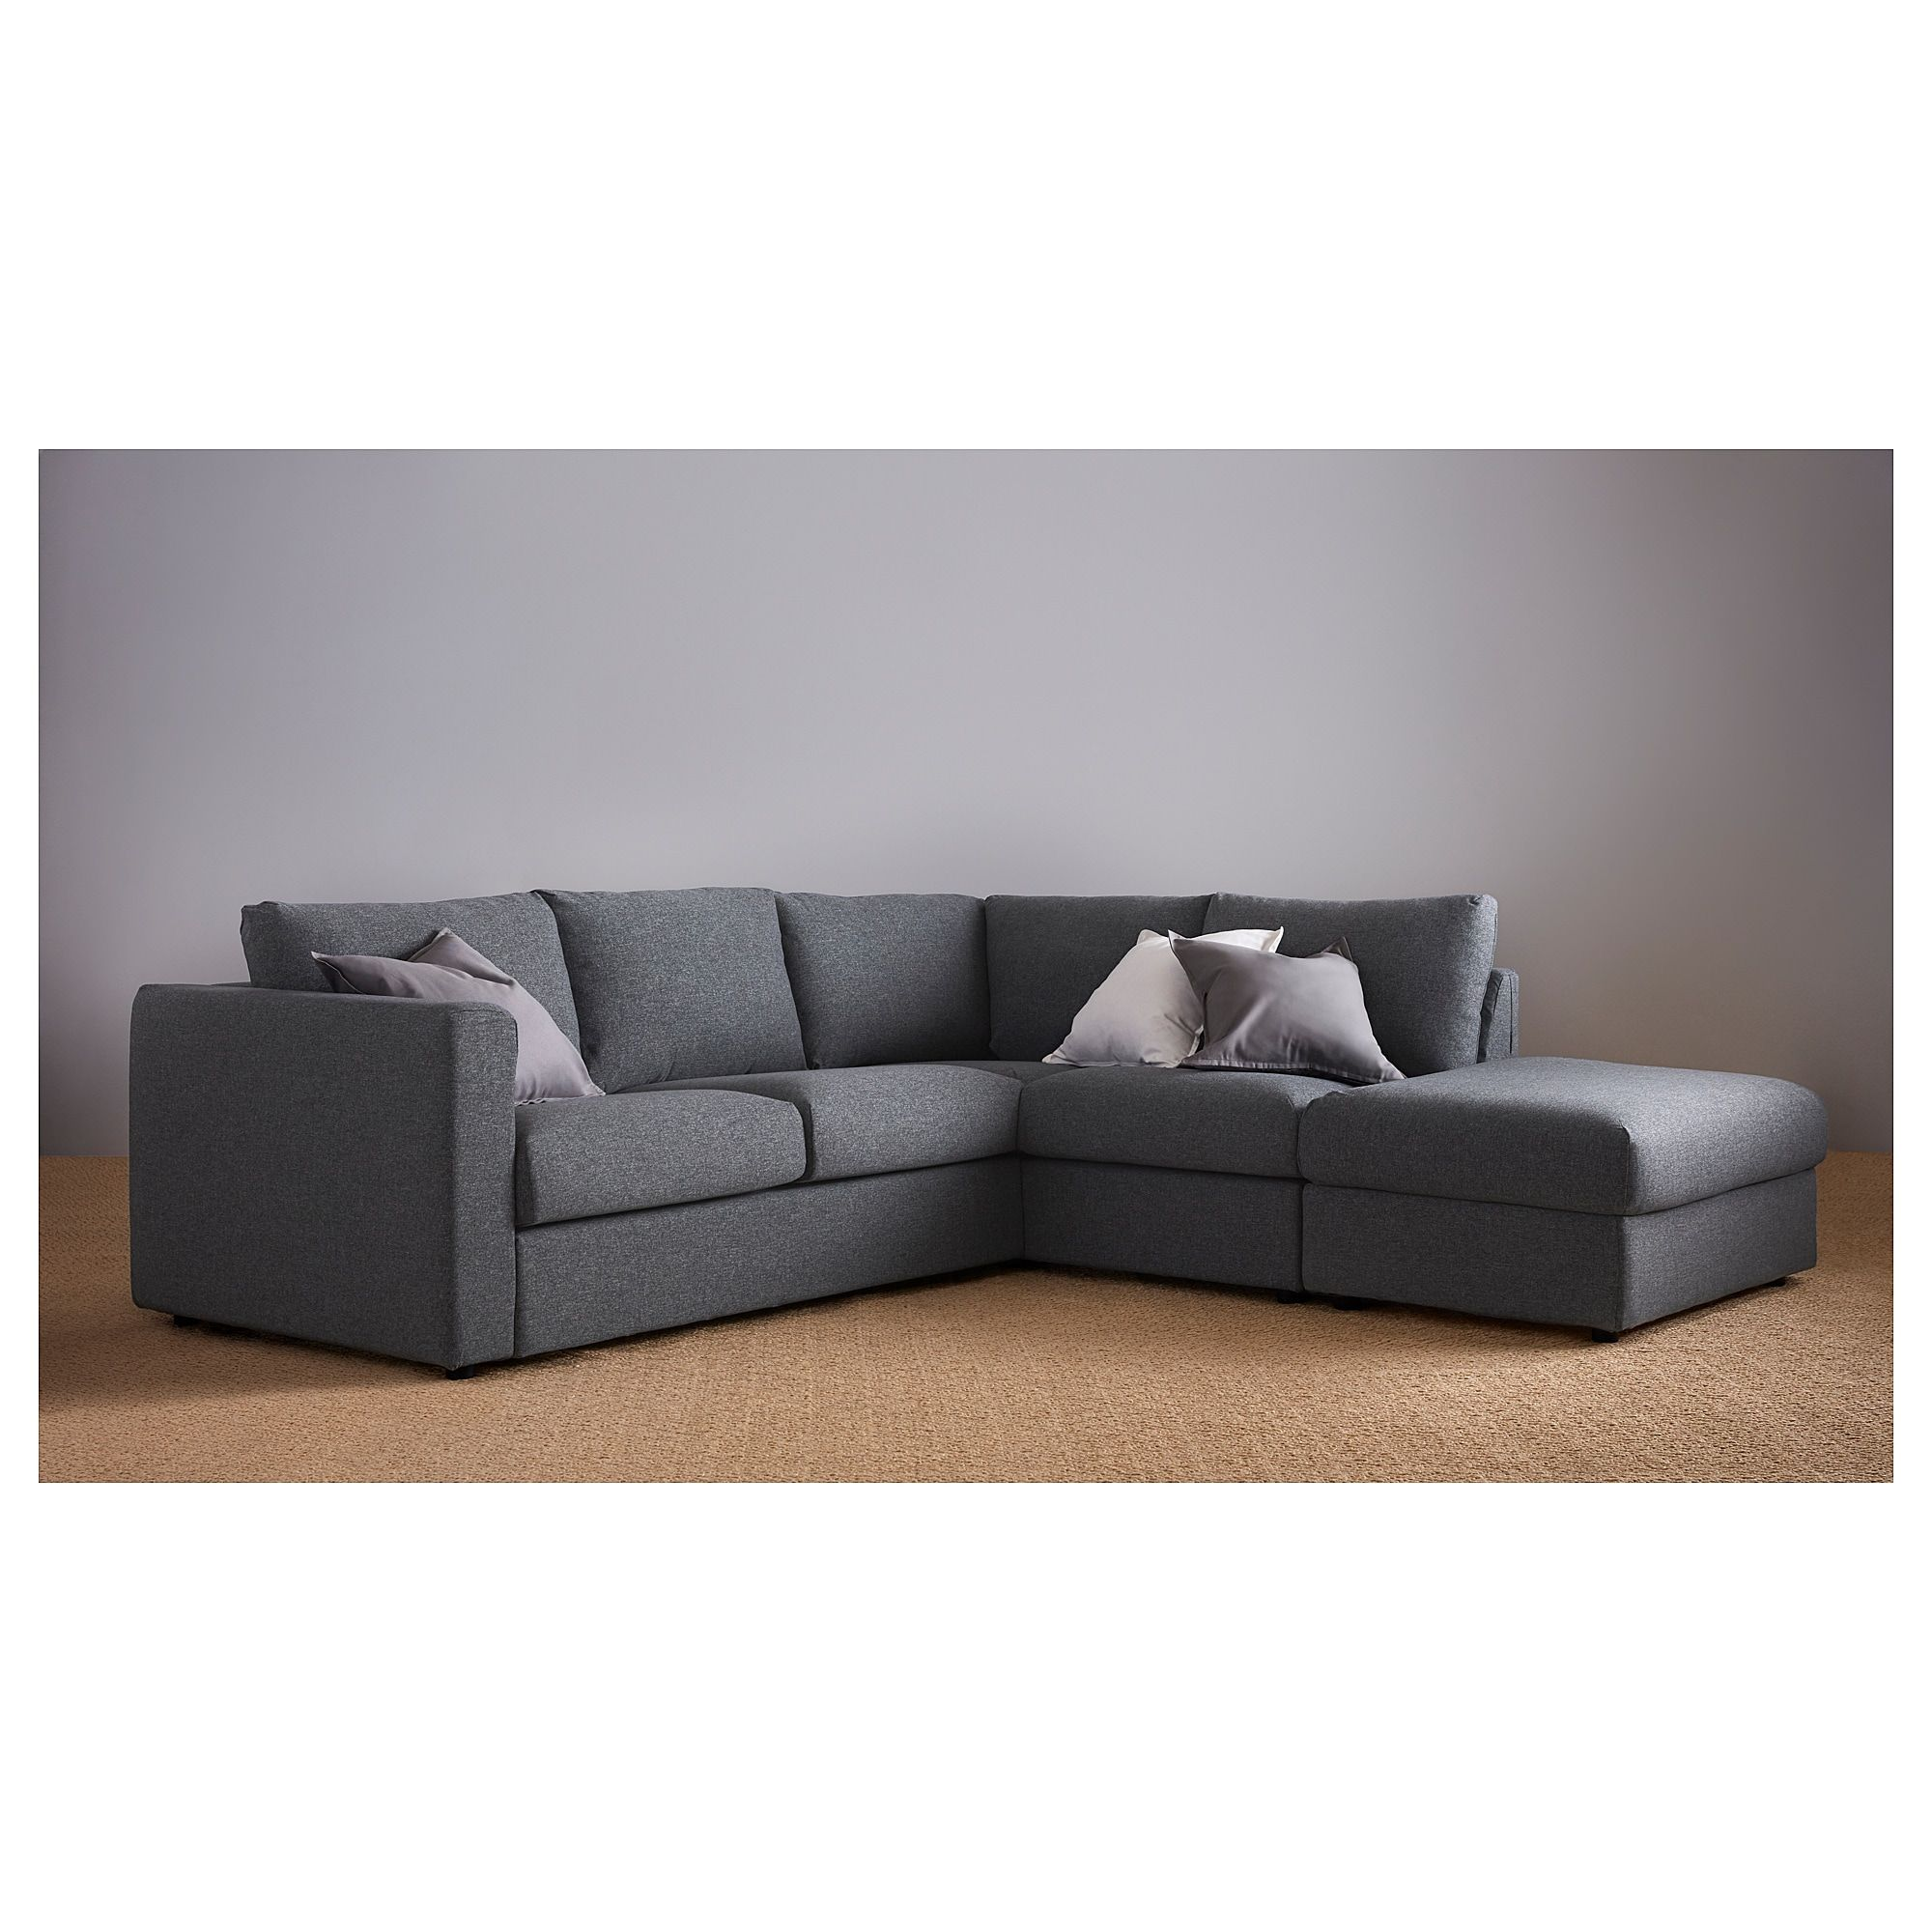 VIMLE Corner sofabed w/storage - with open end, Gunnared ...